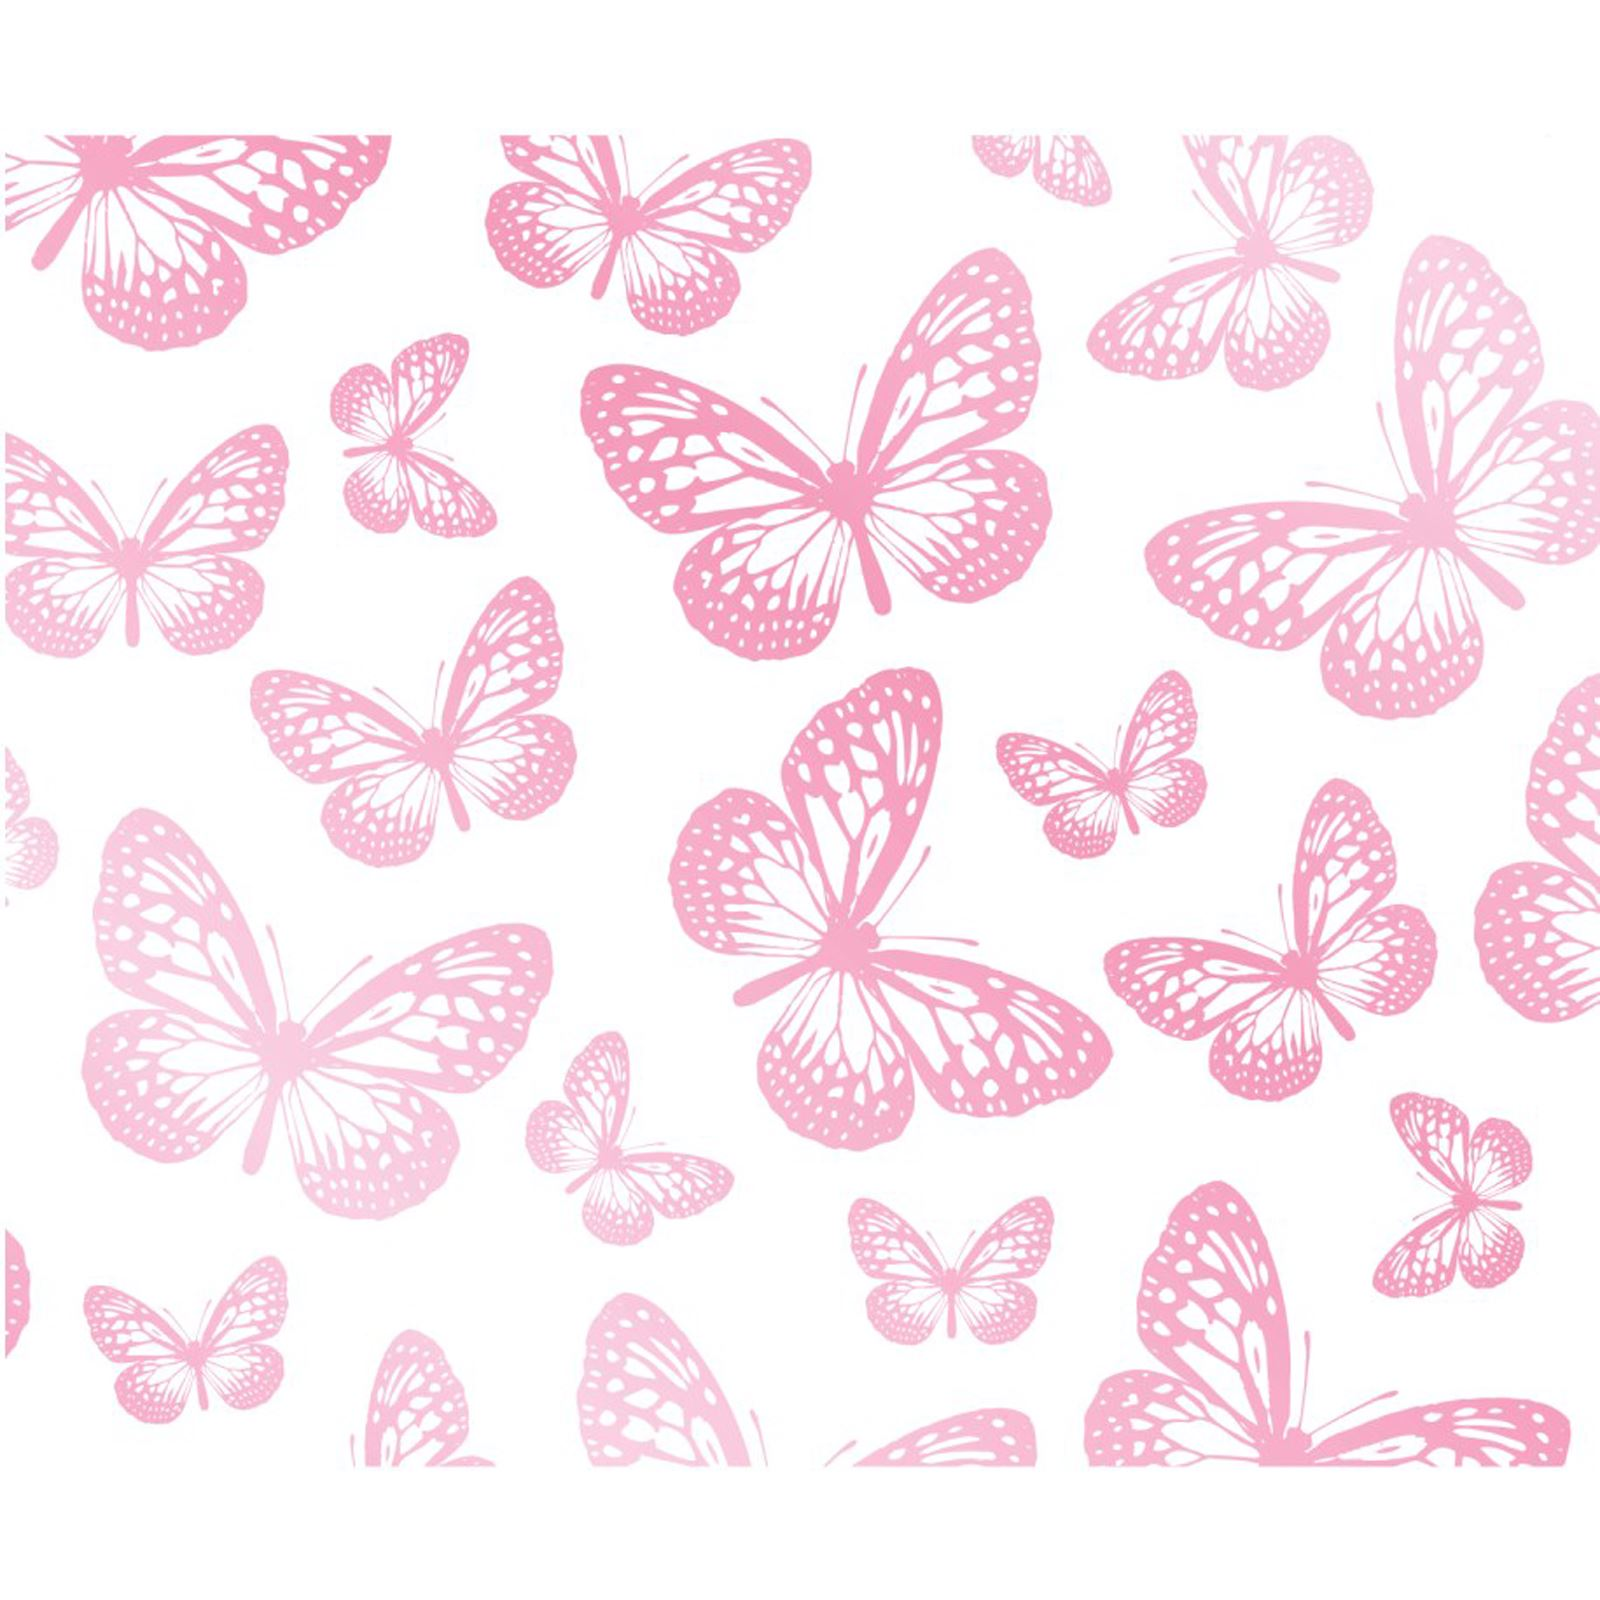 Girls Bedroom Butterfly Wallpaper In Pink White Teal